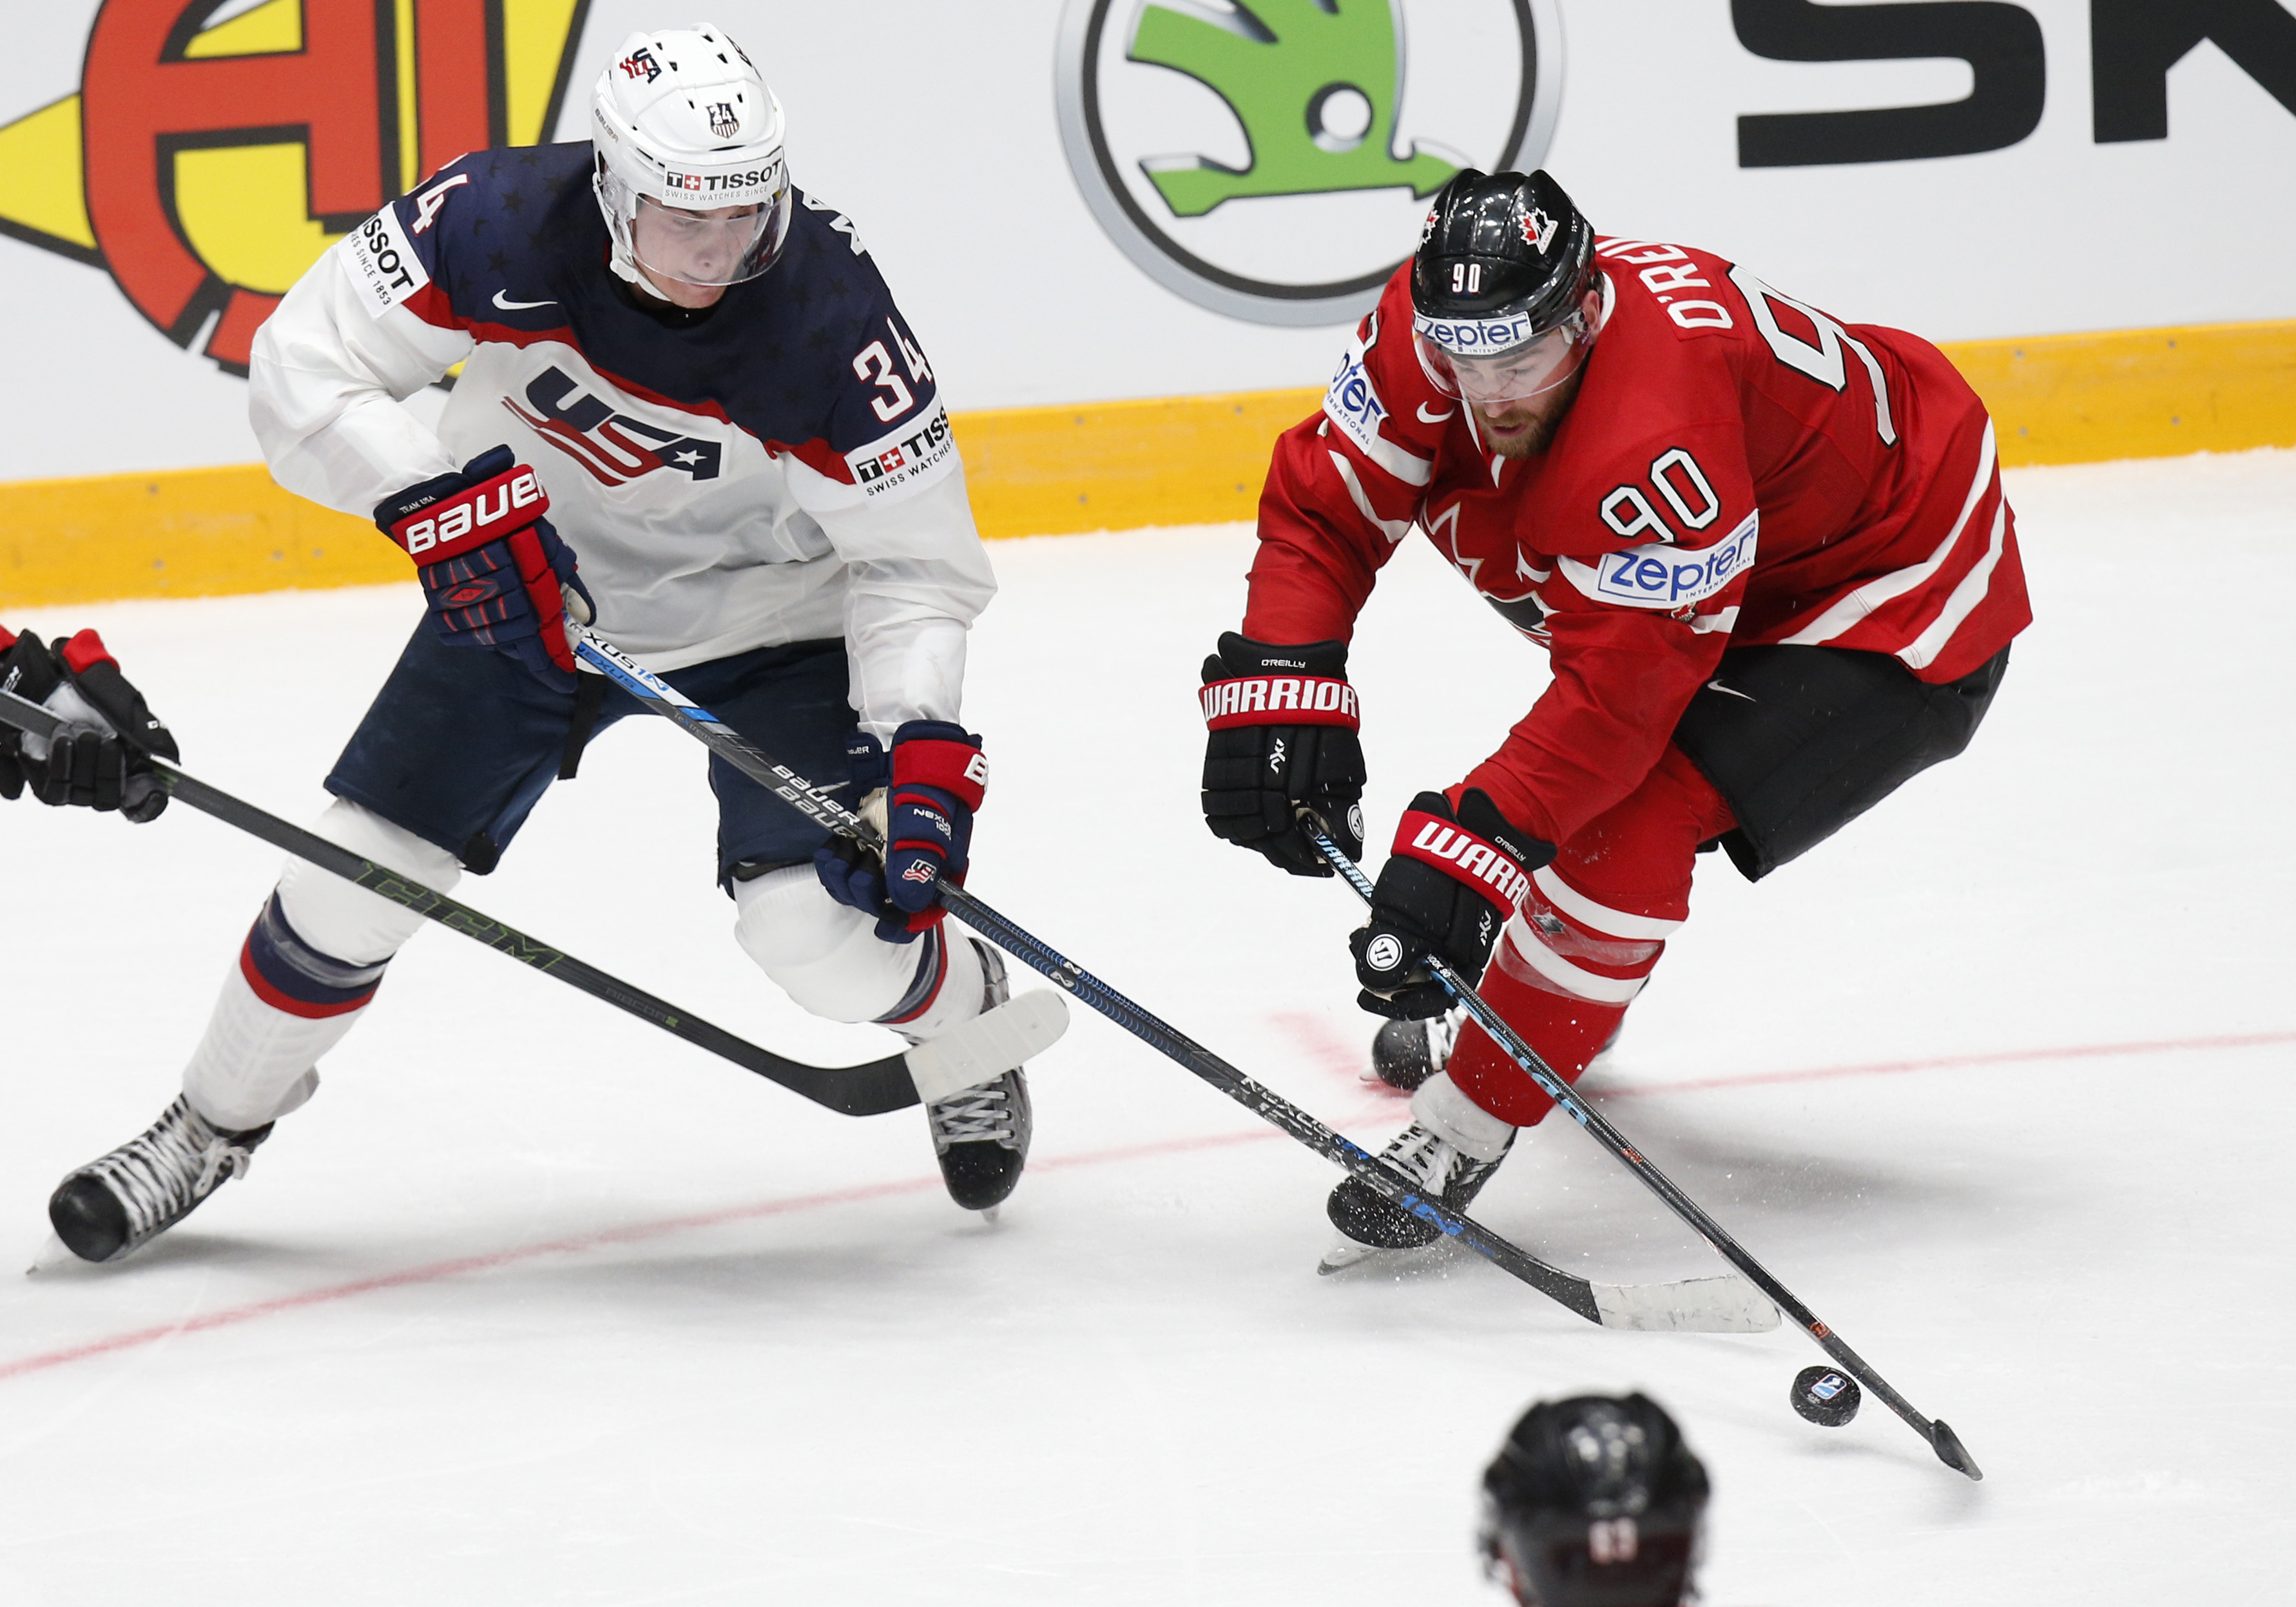 Auston Matthews of the United States, left, challenges Canadas Ryan Reilly during the Hockey World Championships Group B match in St. Petersburg, Russia, Friday, May 6, 2016. (AP Photo/Dmitri Lovetsky)